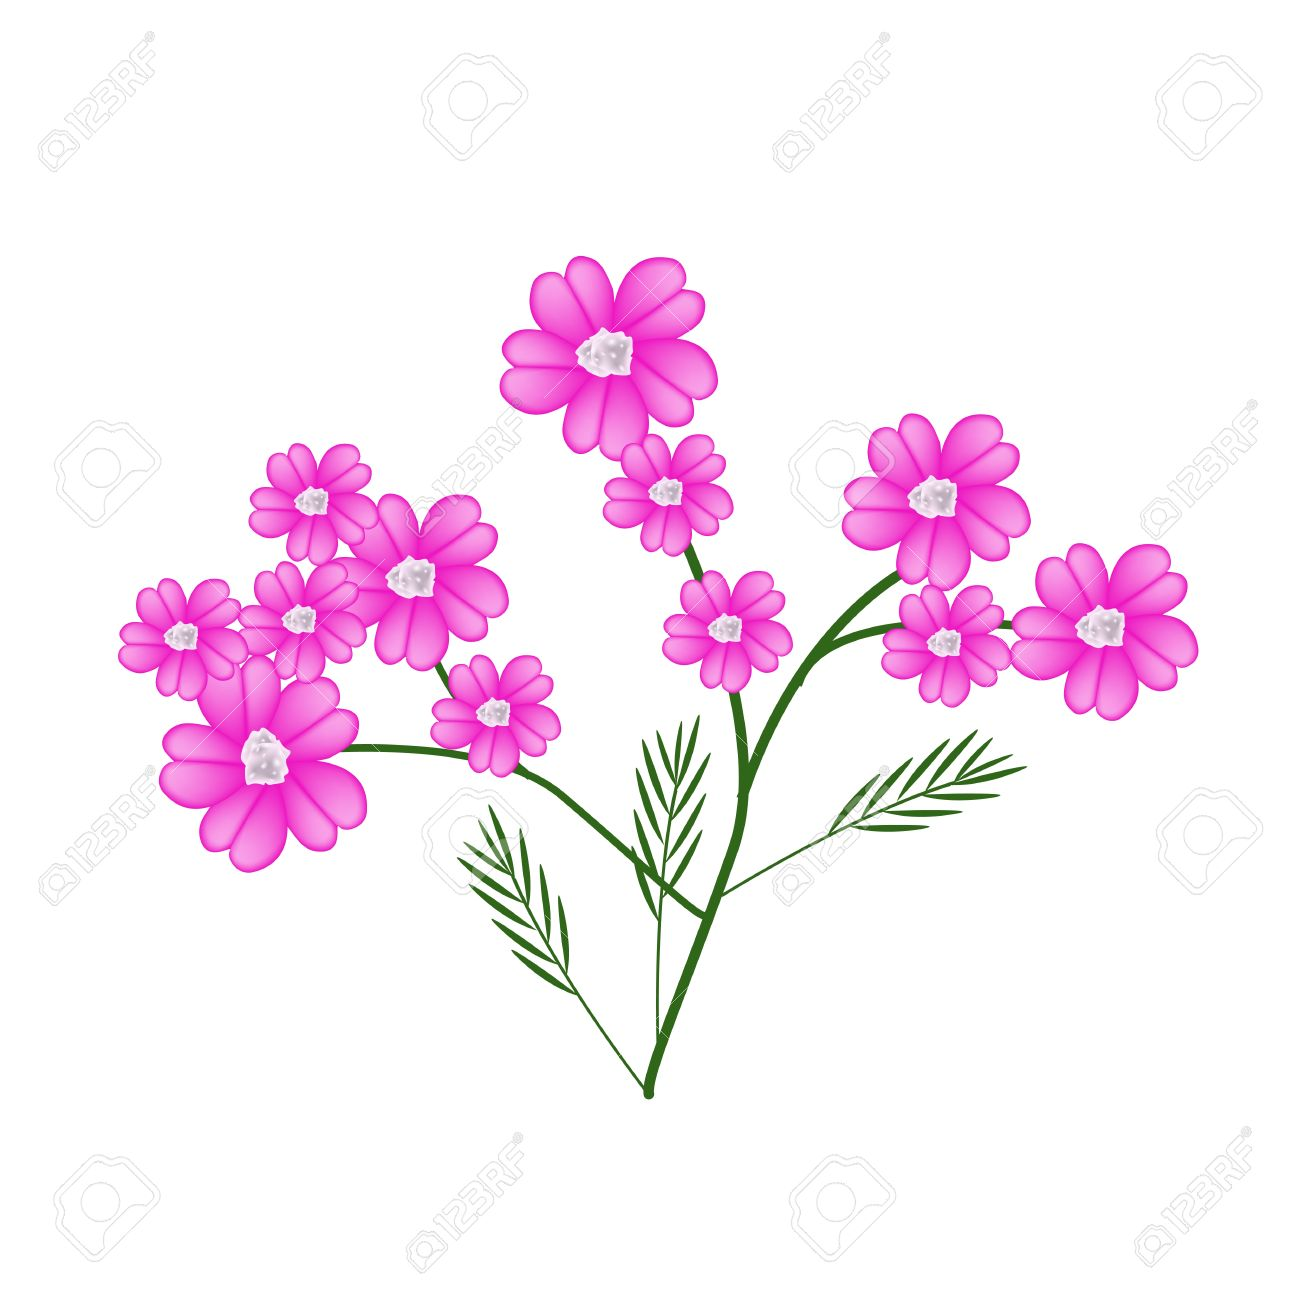 Beautiful Flower, Illustration Of Pink Yarrow Flowers Or Achillea.